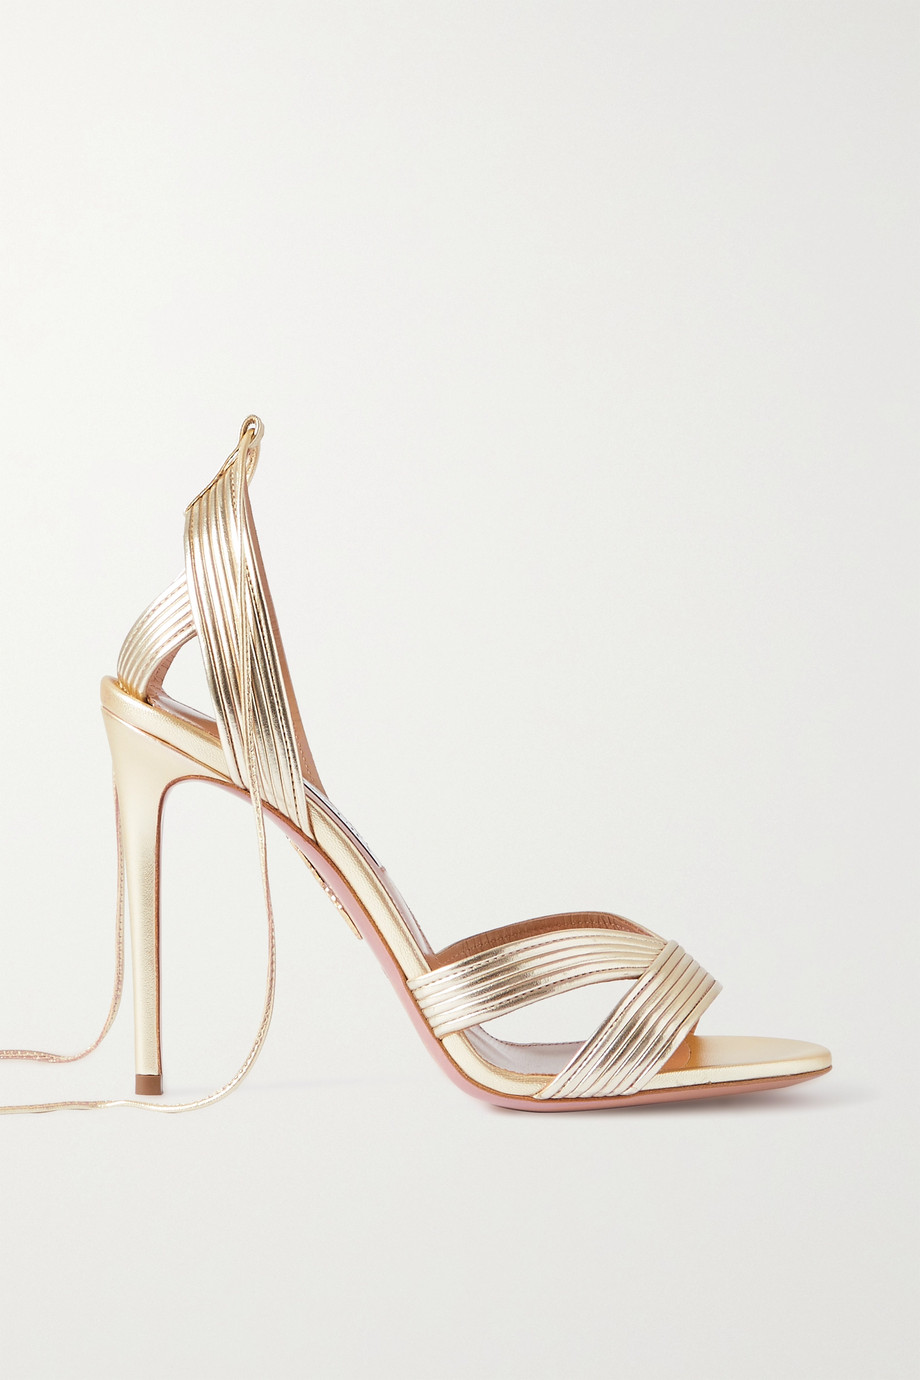 Aquazzura Ari 105 metallic leather sandals